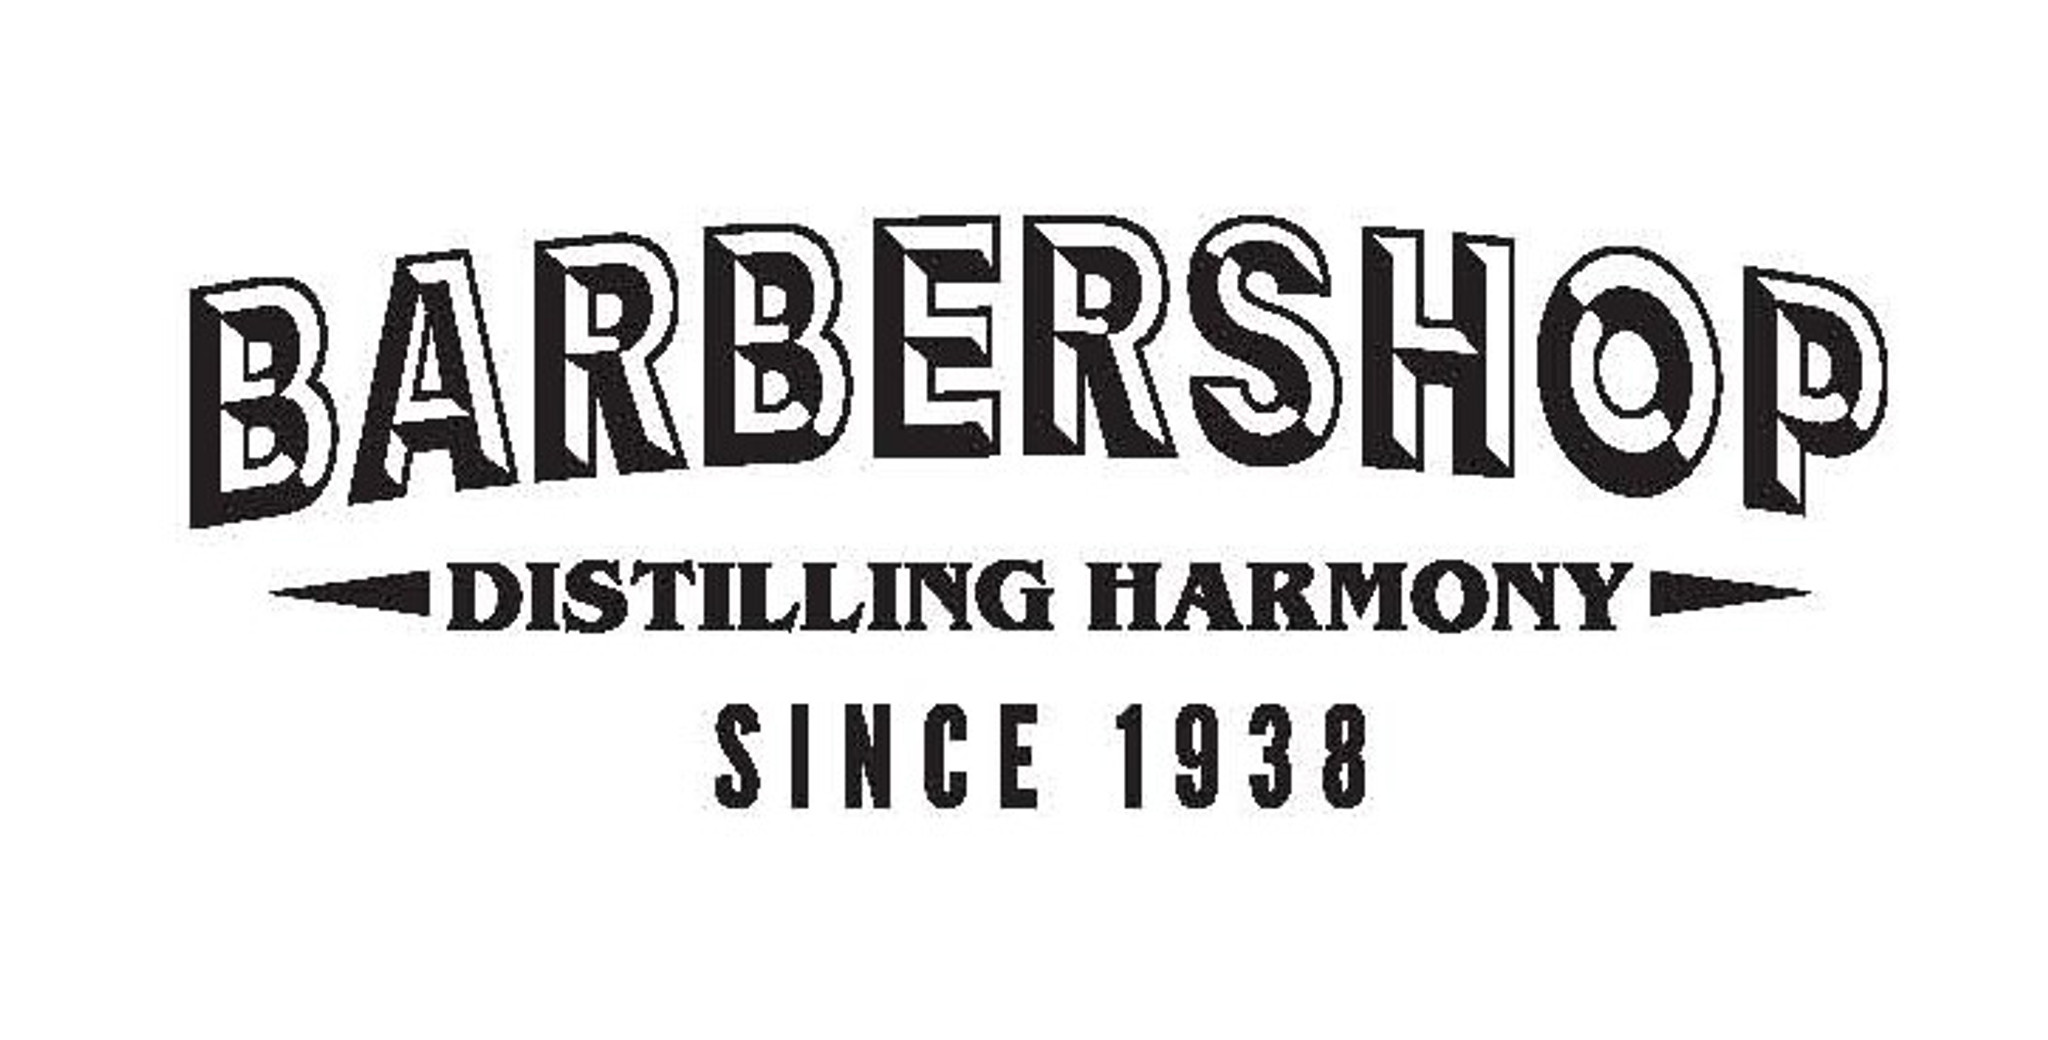 View all Distilling Harmony product line